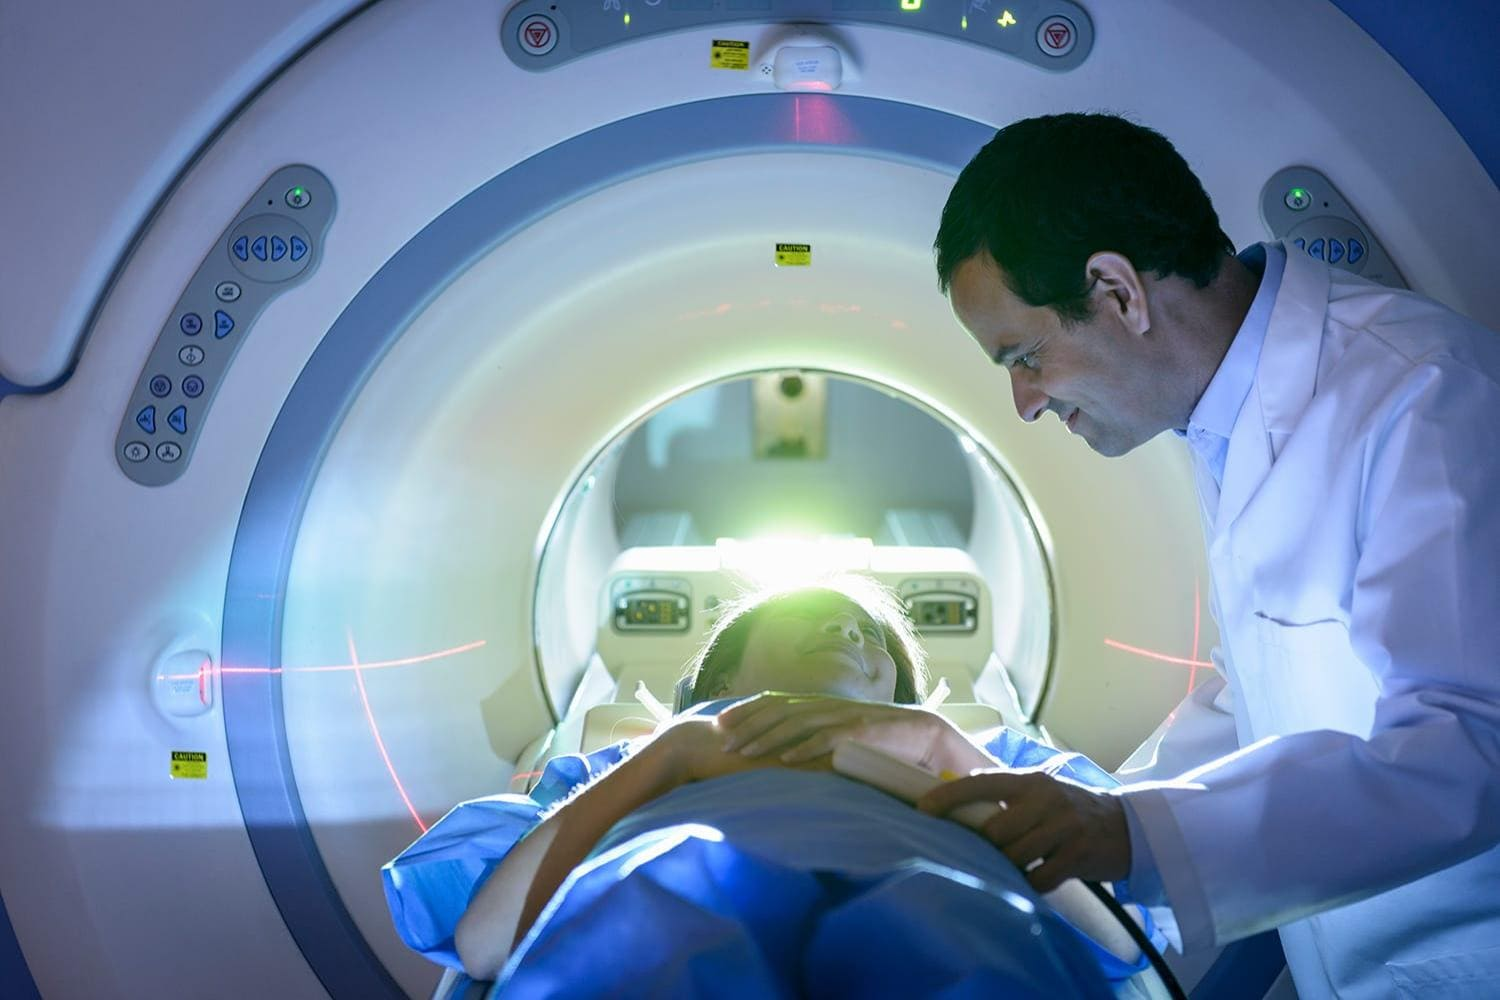 Doctor and patient using MRI machine